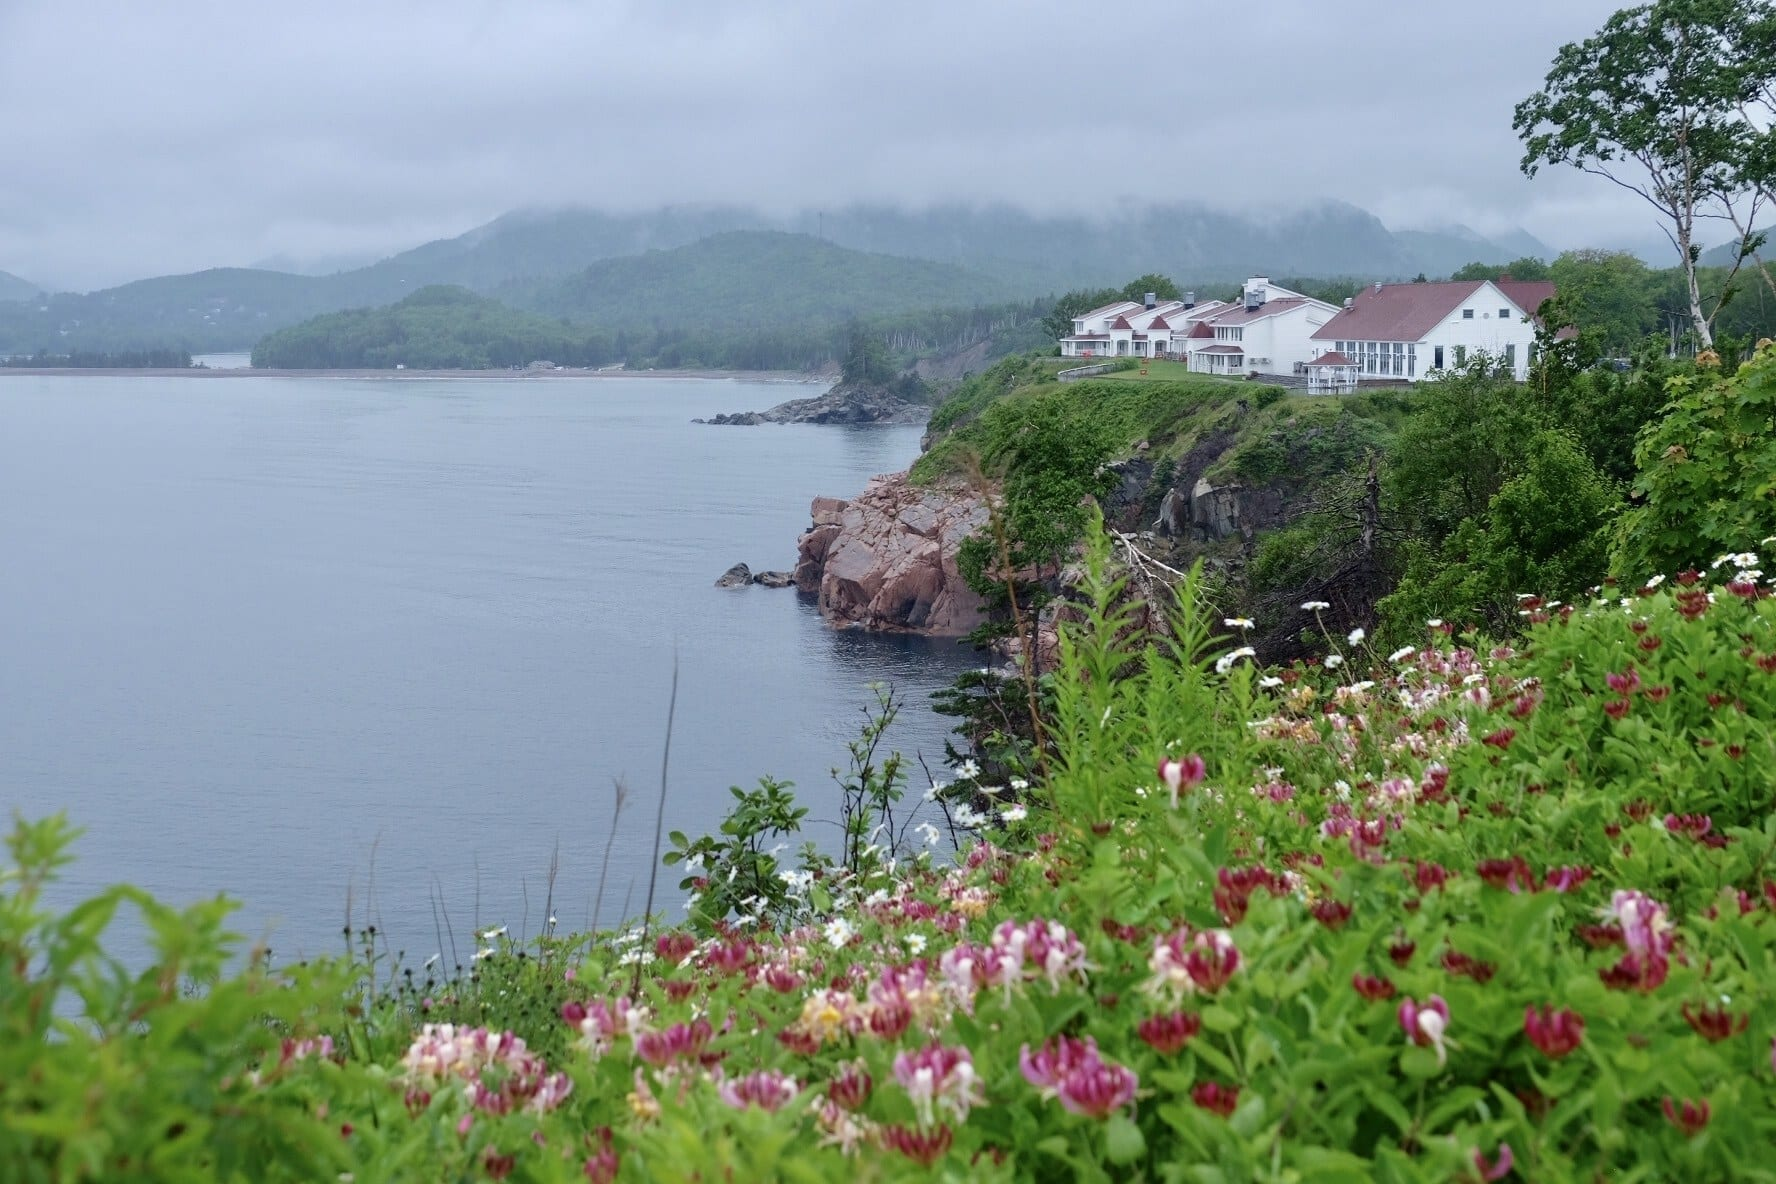 White cottages sit atop a gray cliff; in the foreground are flowers. A gray day in Nova Scotia.